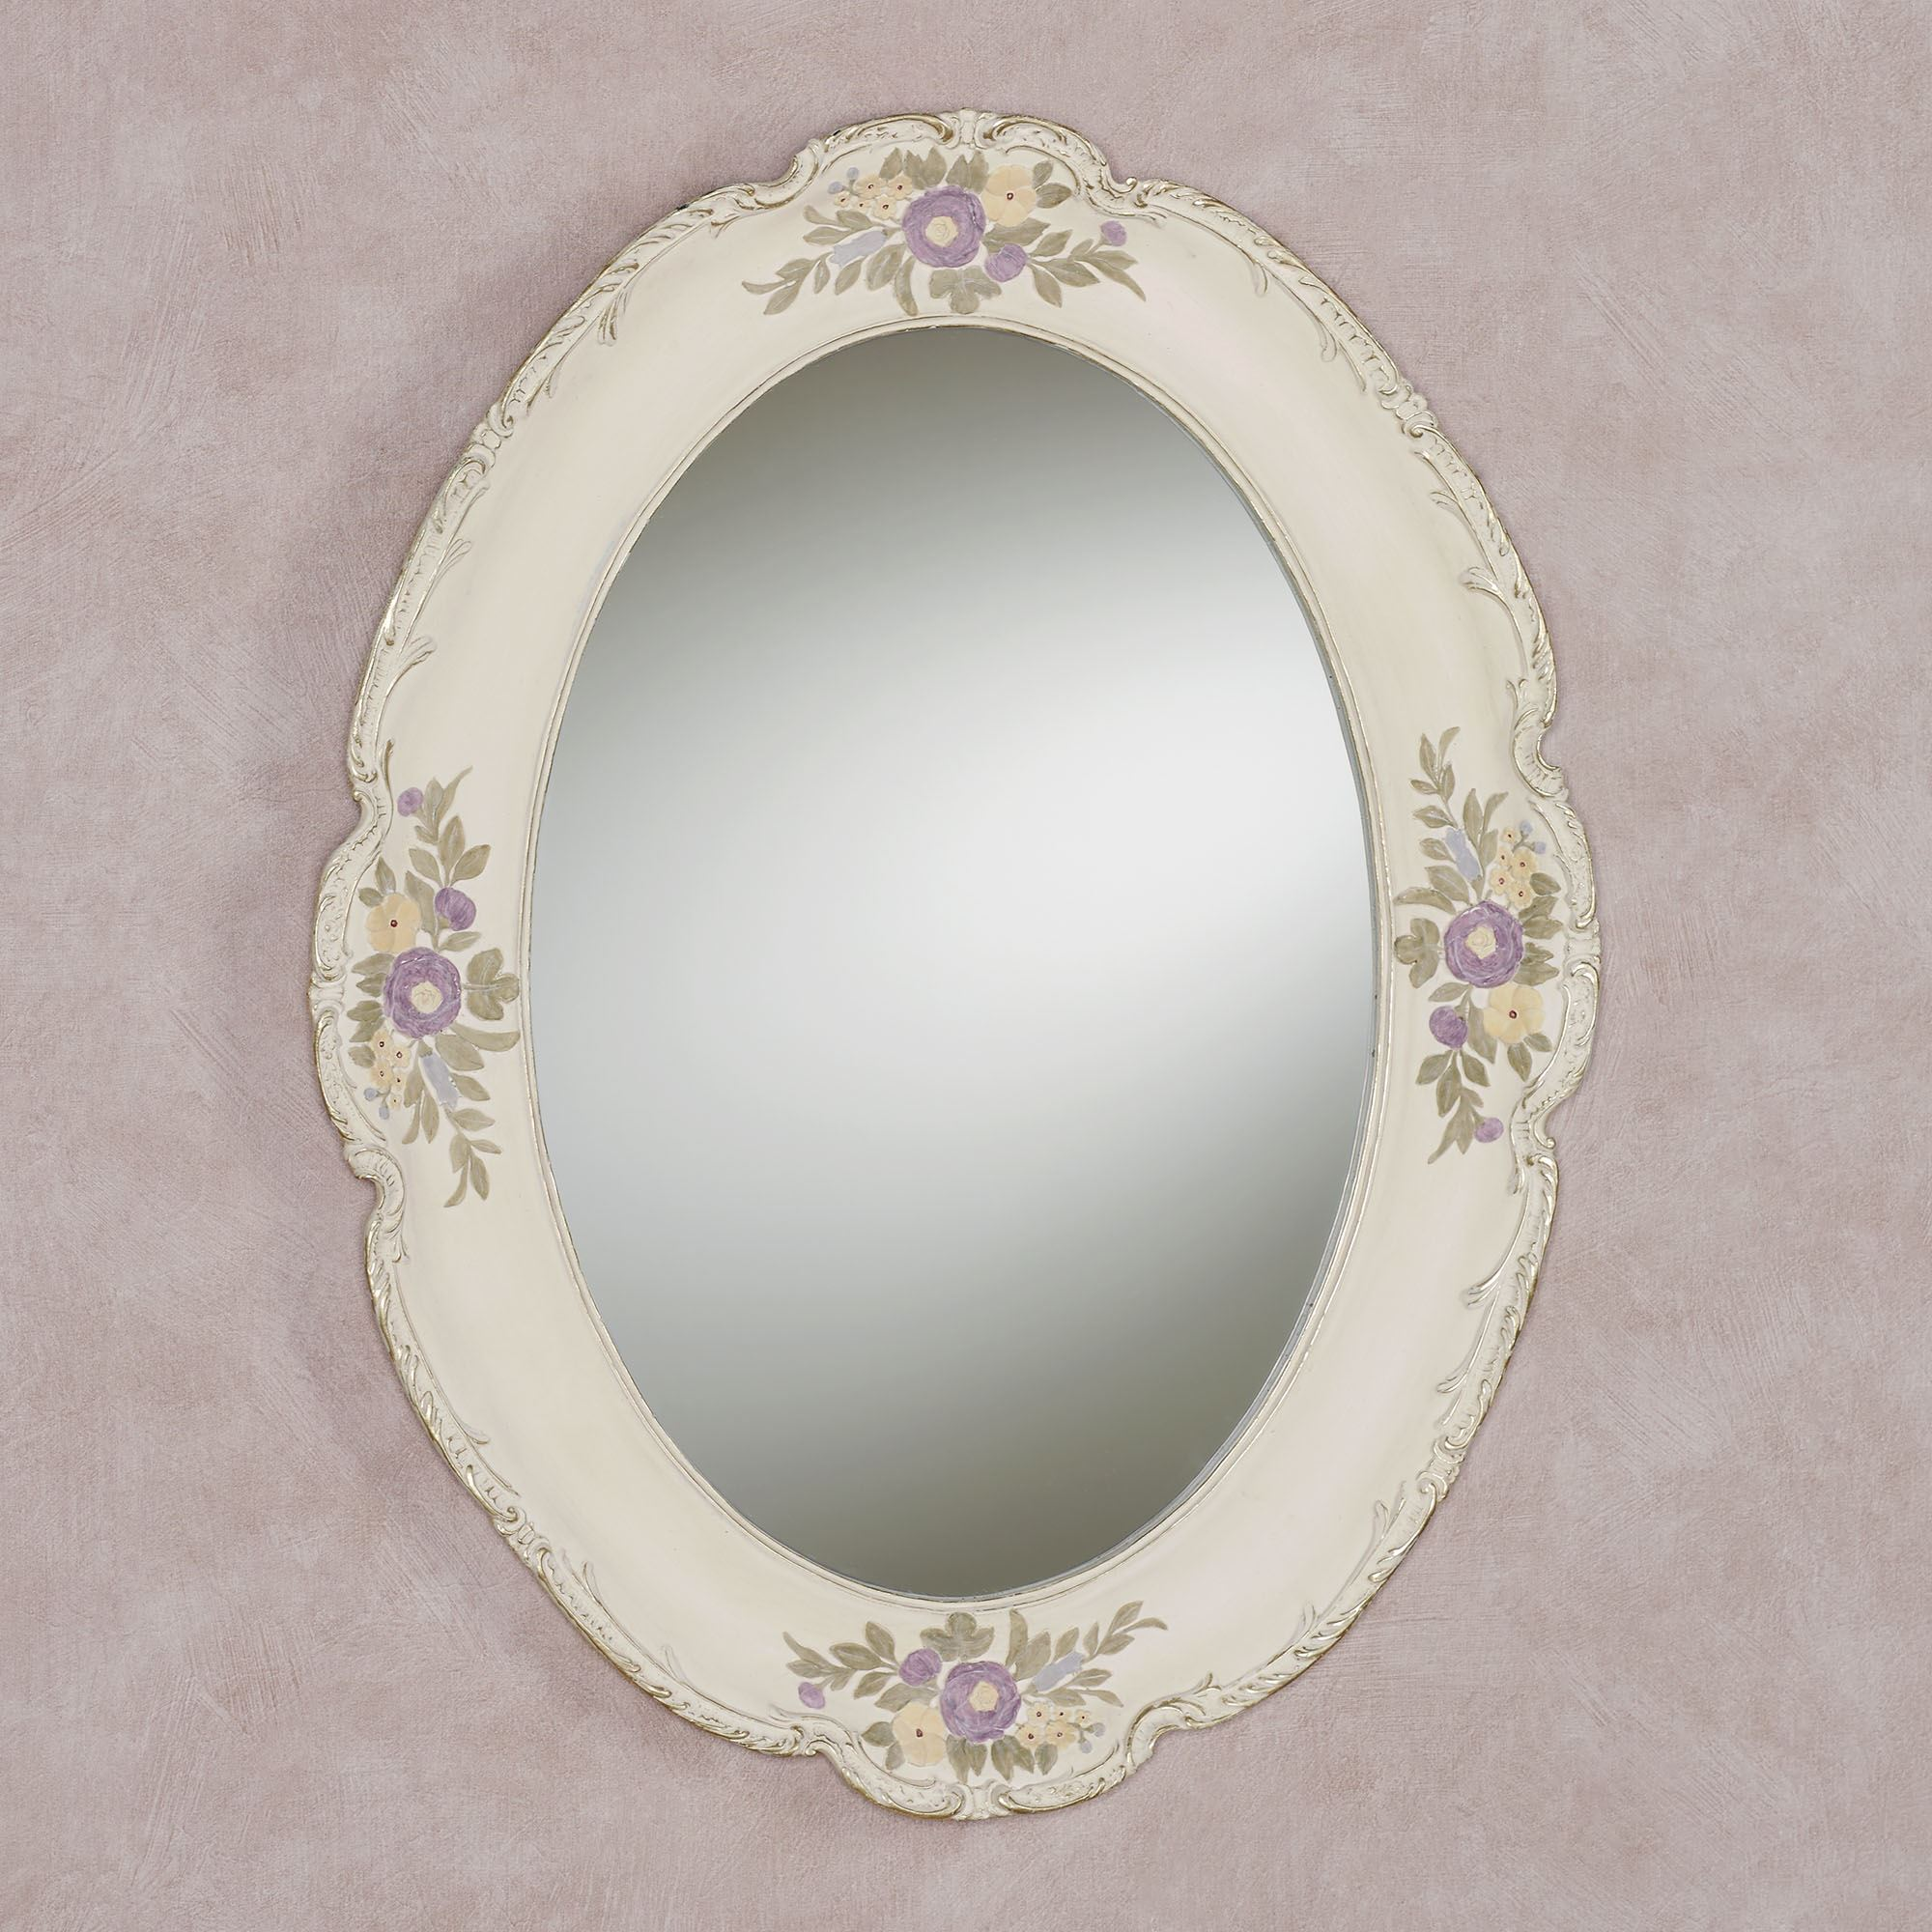 Enclaire Ivory Floral Oval Wall Mirror